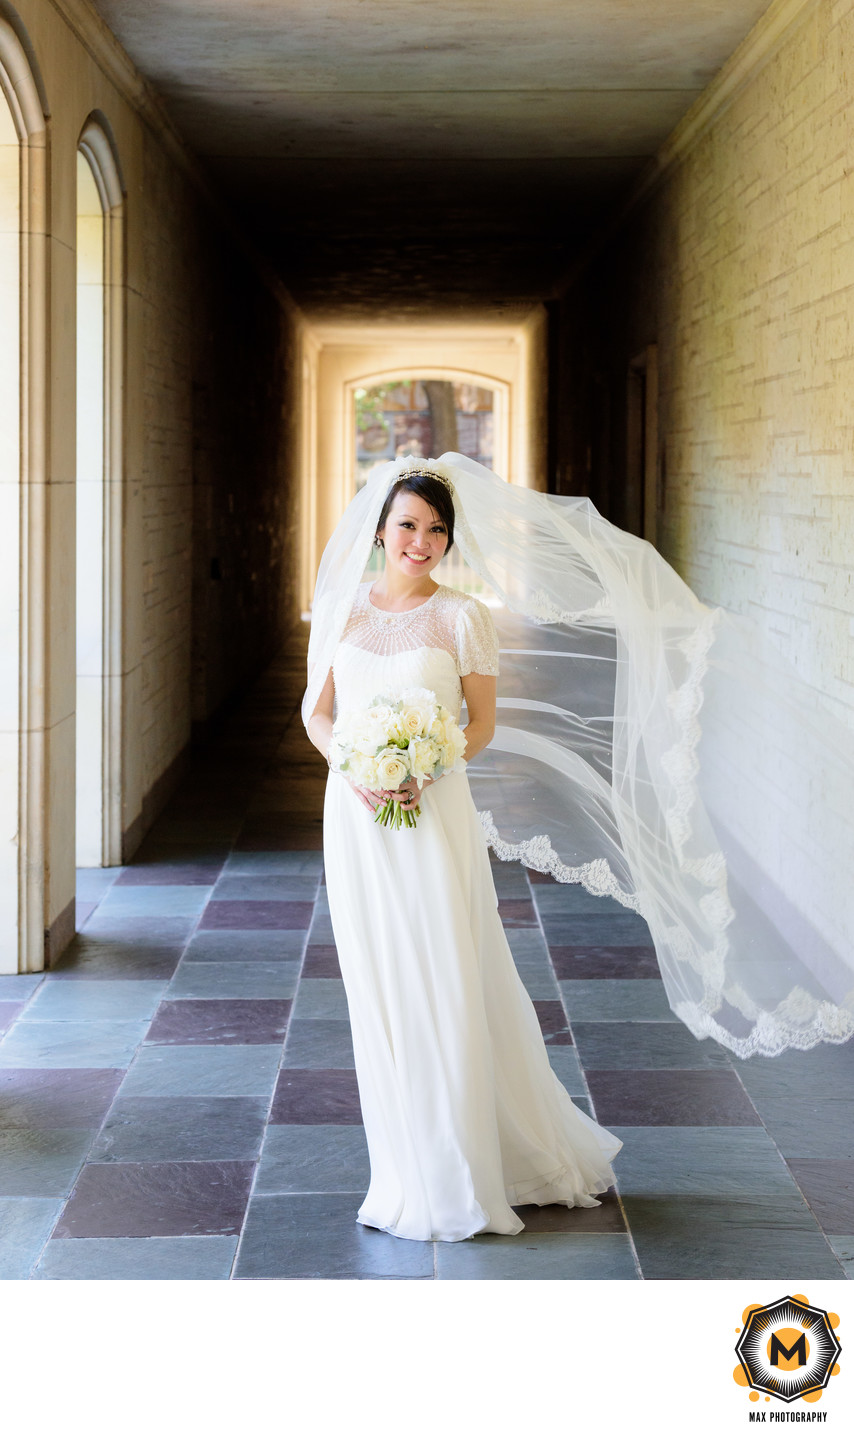 Wedding Photographer for University Catholic Center